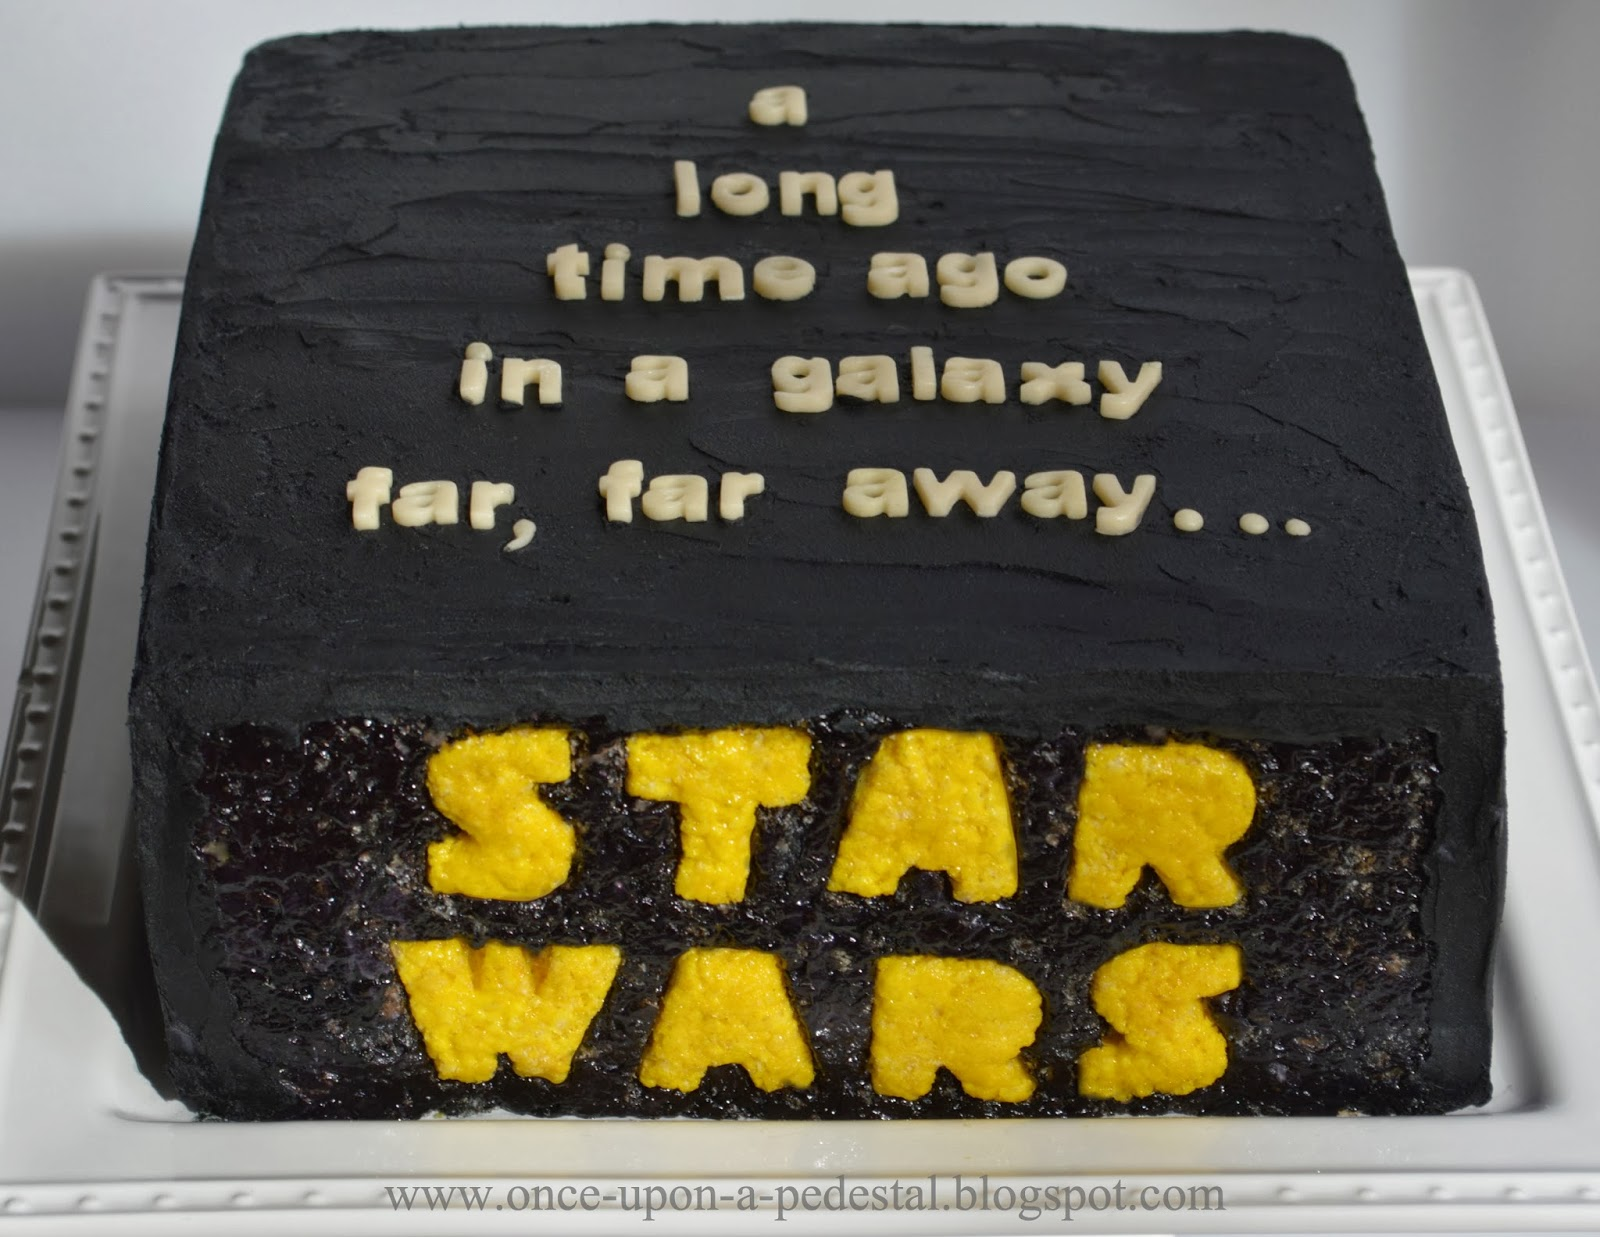 star-wars-cake-surprise-inside-text-rice-krispies-gluten-free-cake-deborah-stauch